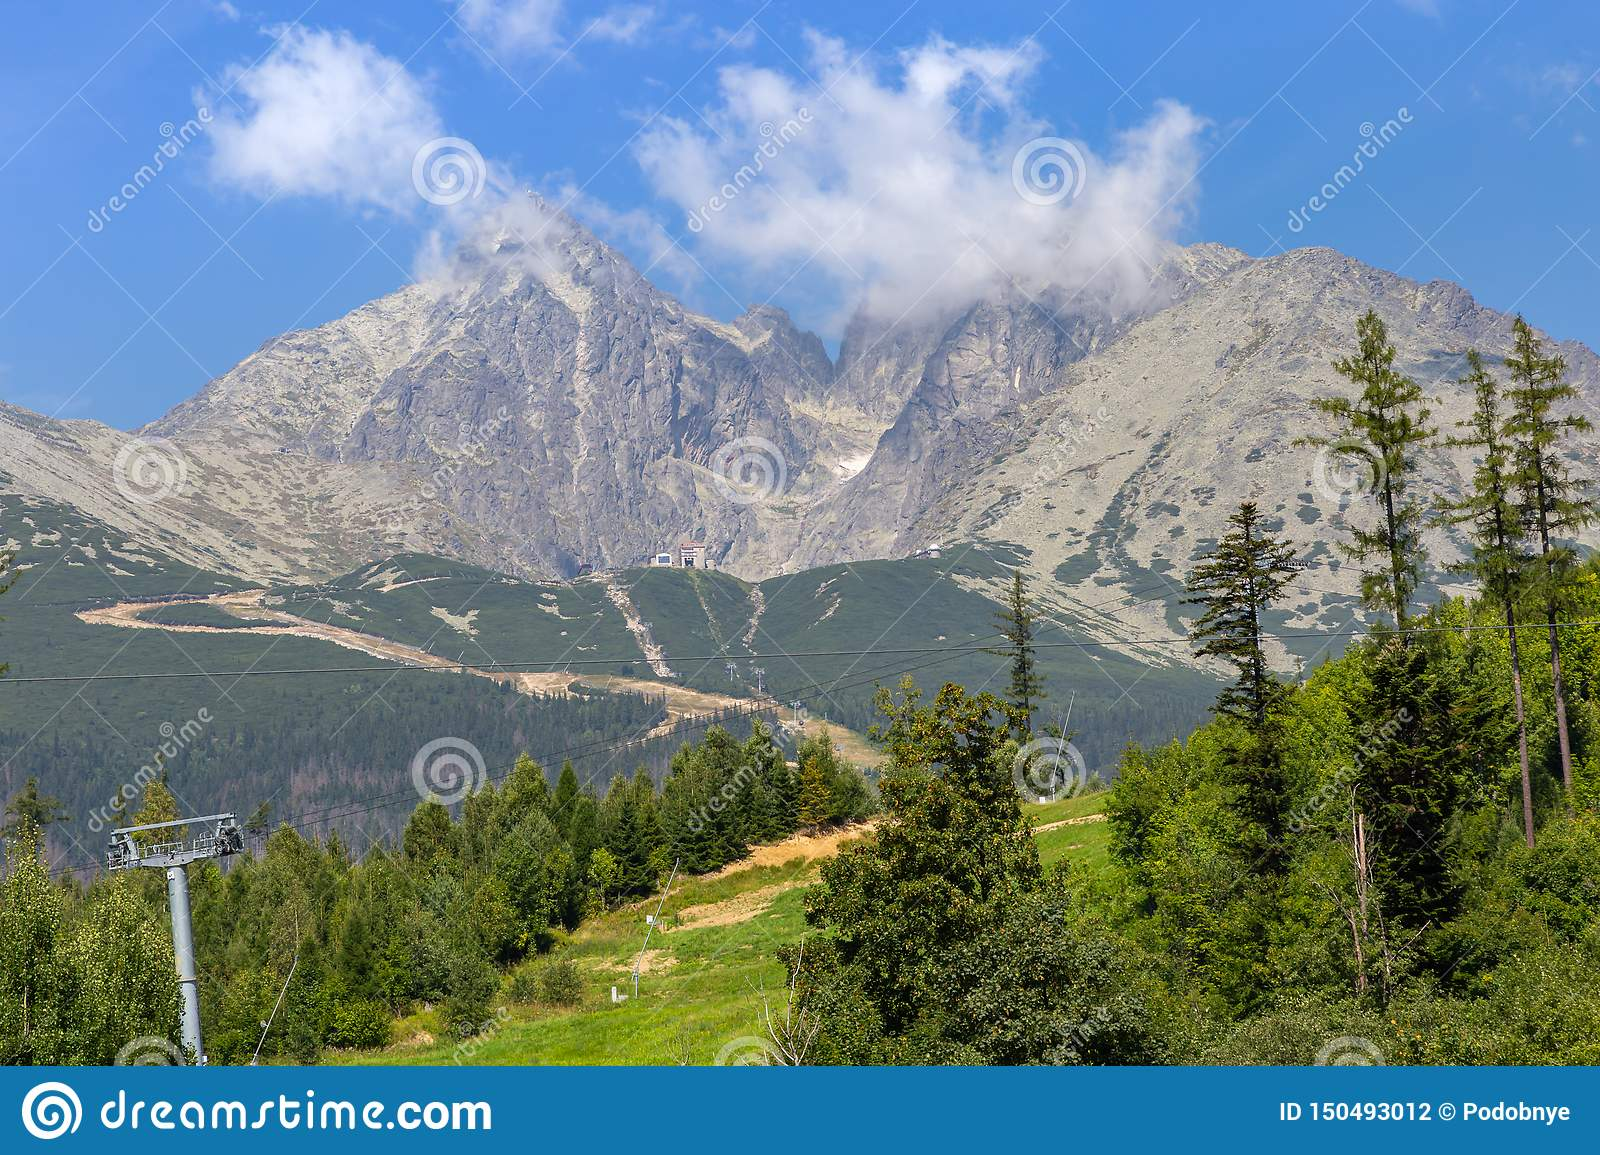 Cableway way to mountains in national park, Slovakia